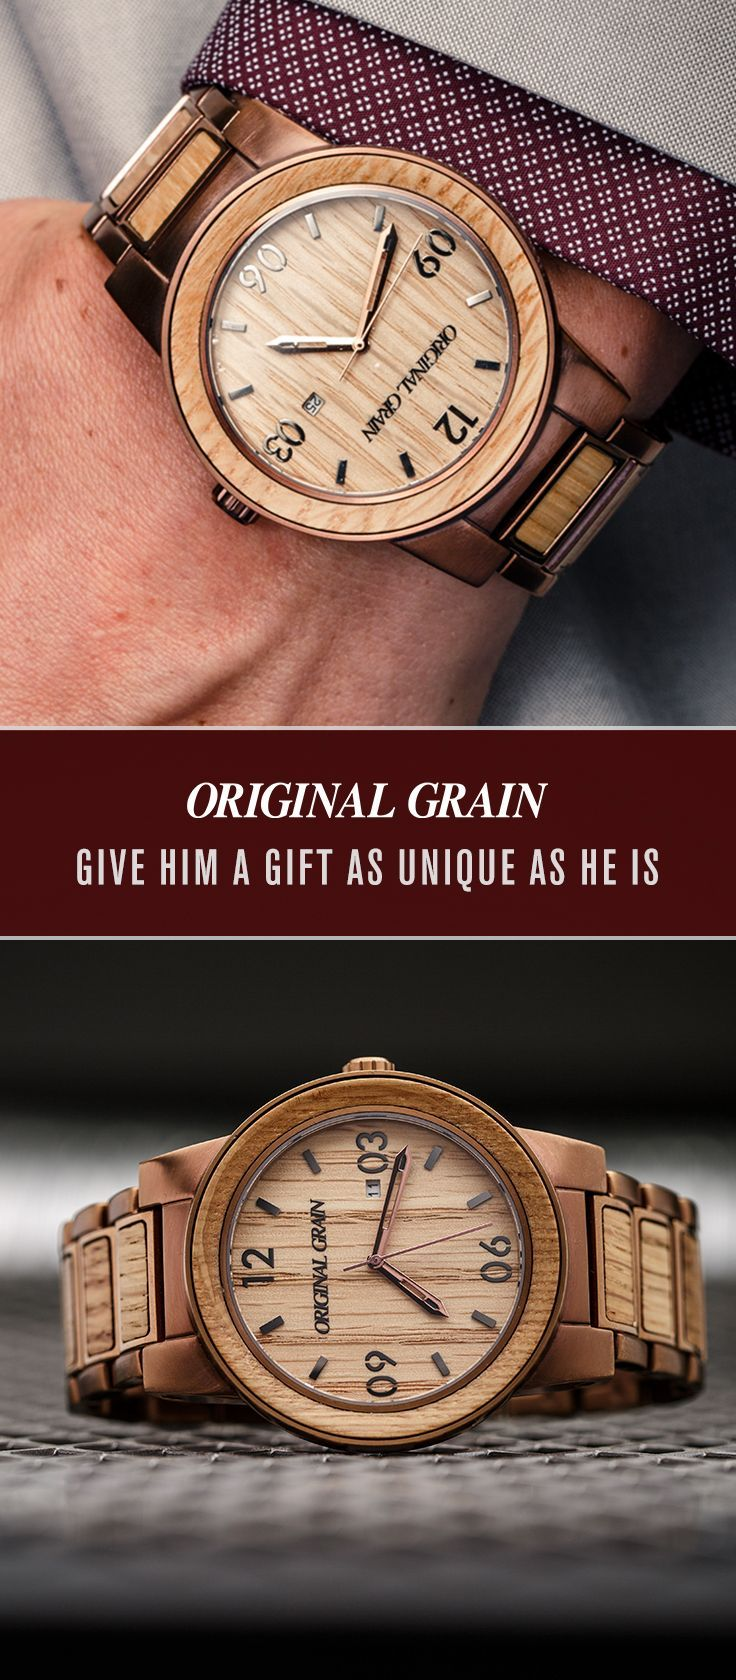 barrel a the barrels unique oak new whiskey tradition has of in combining grain style steel and synergy one originalgrain fashion original watches hottest pursuit reclaimed created whisky on